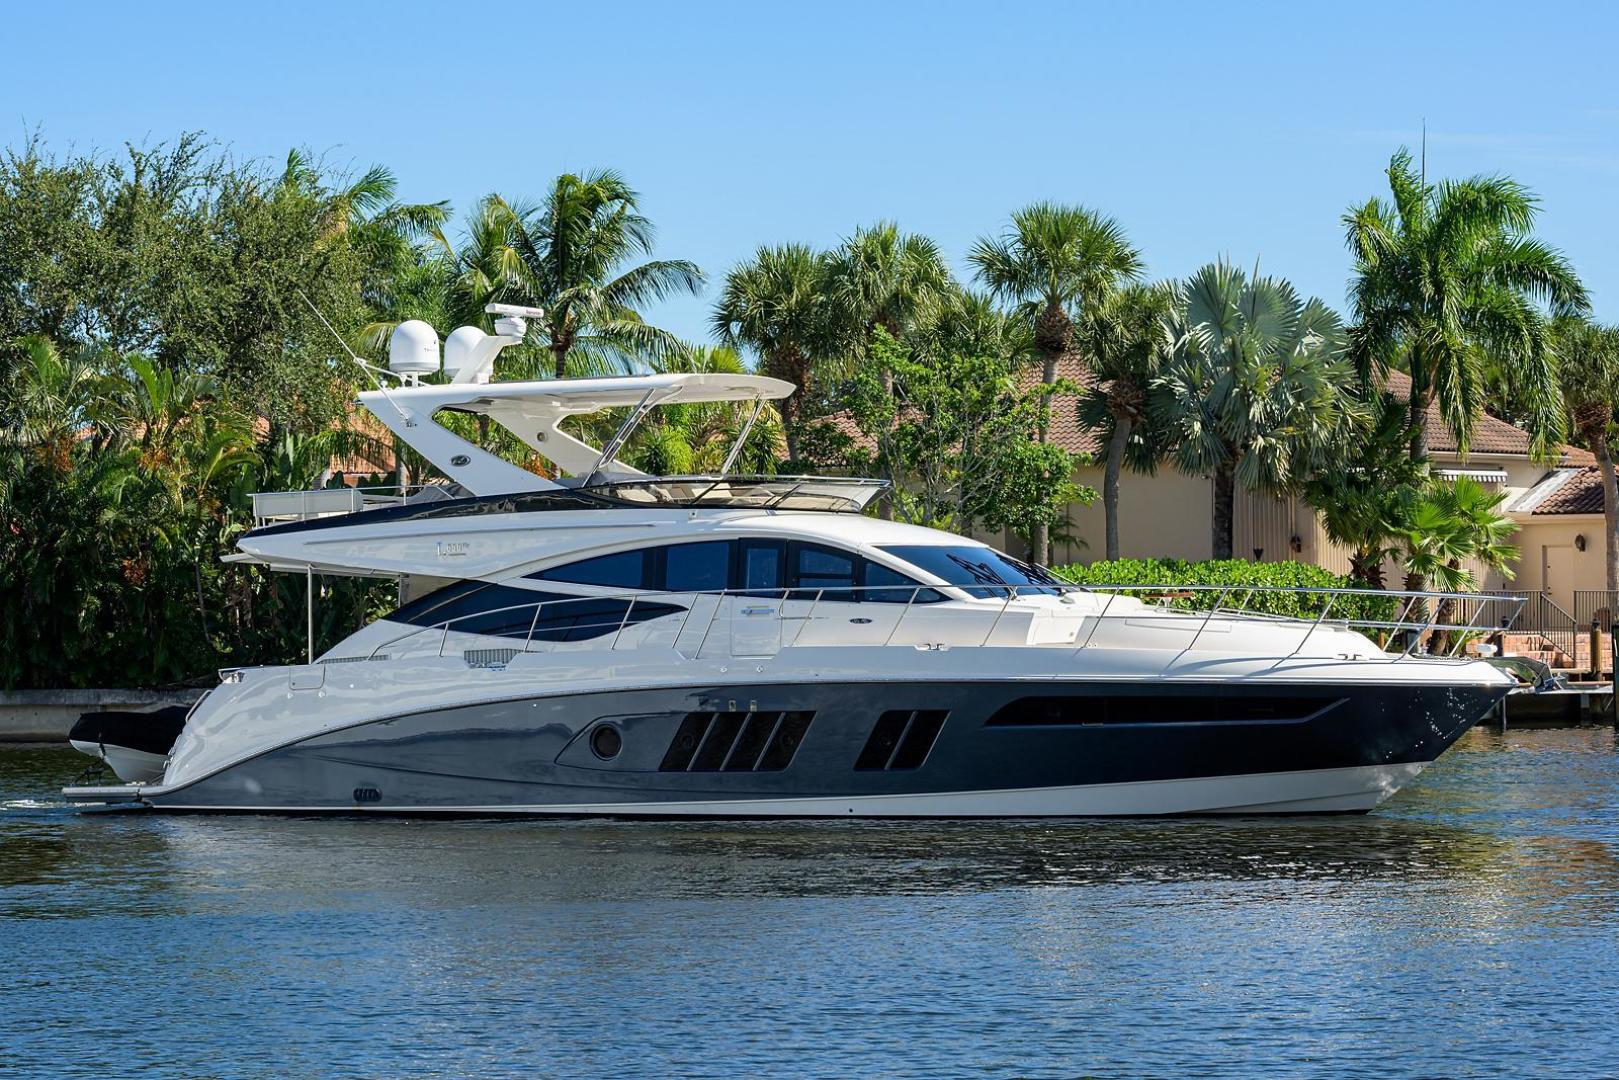 65' Sea Ray 2015 L650 Fly KNOT ON CALL